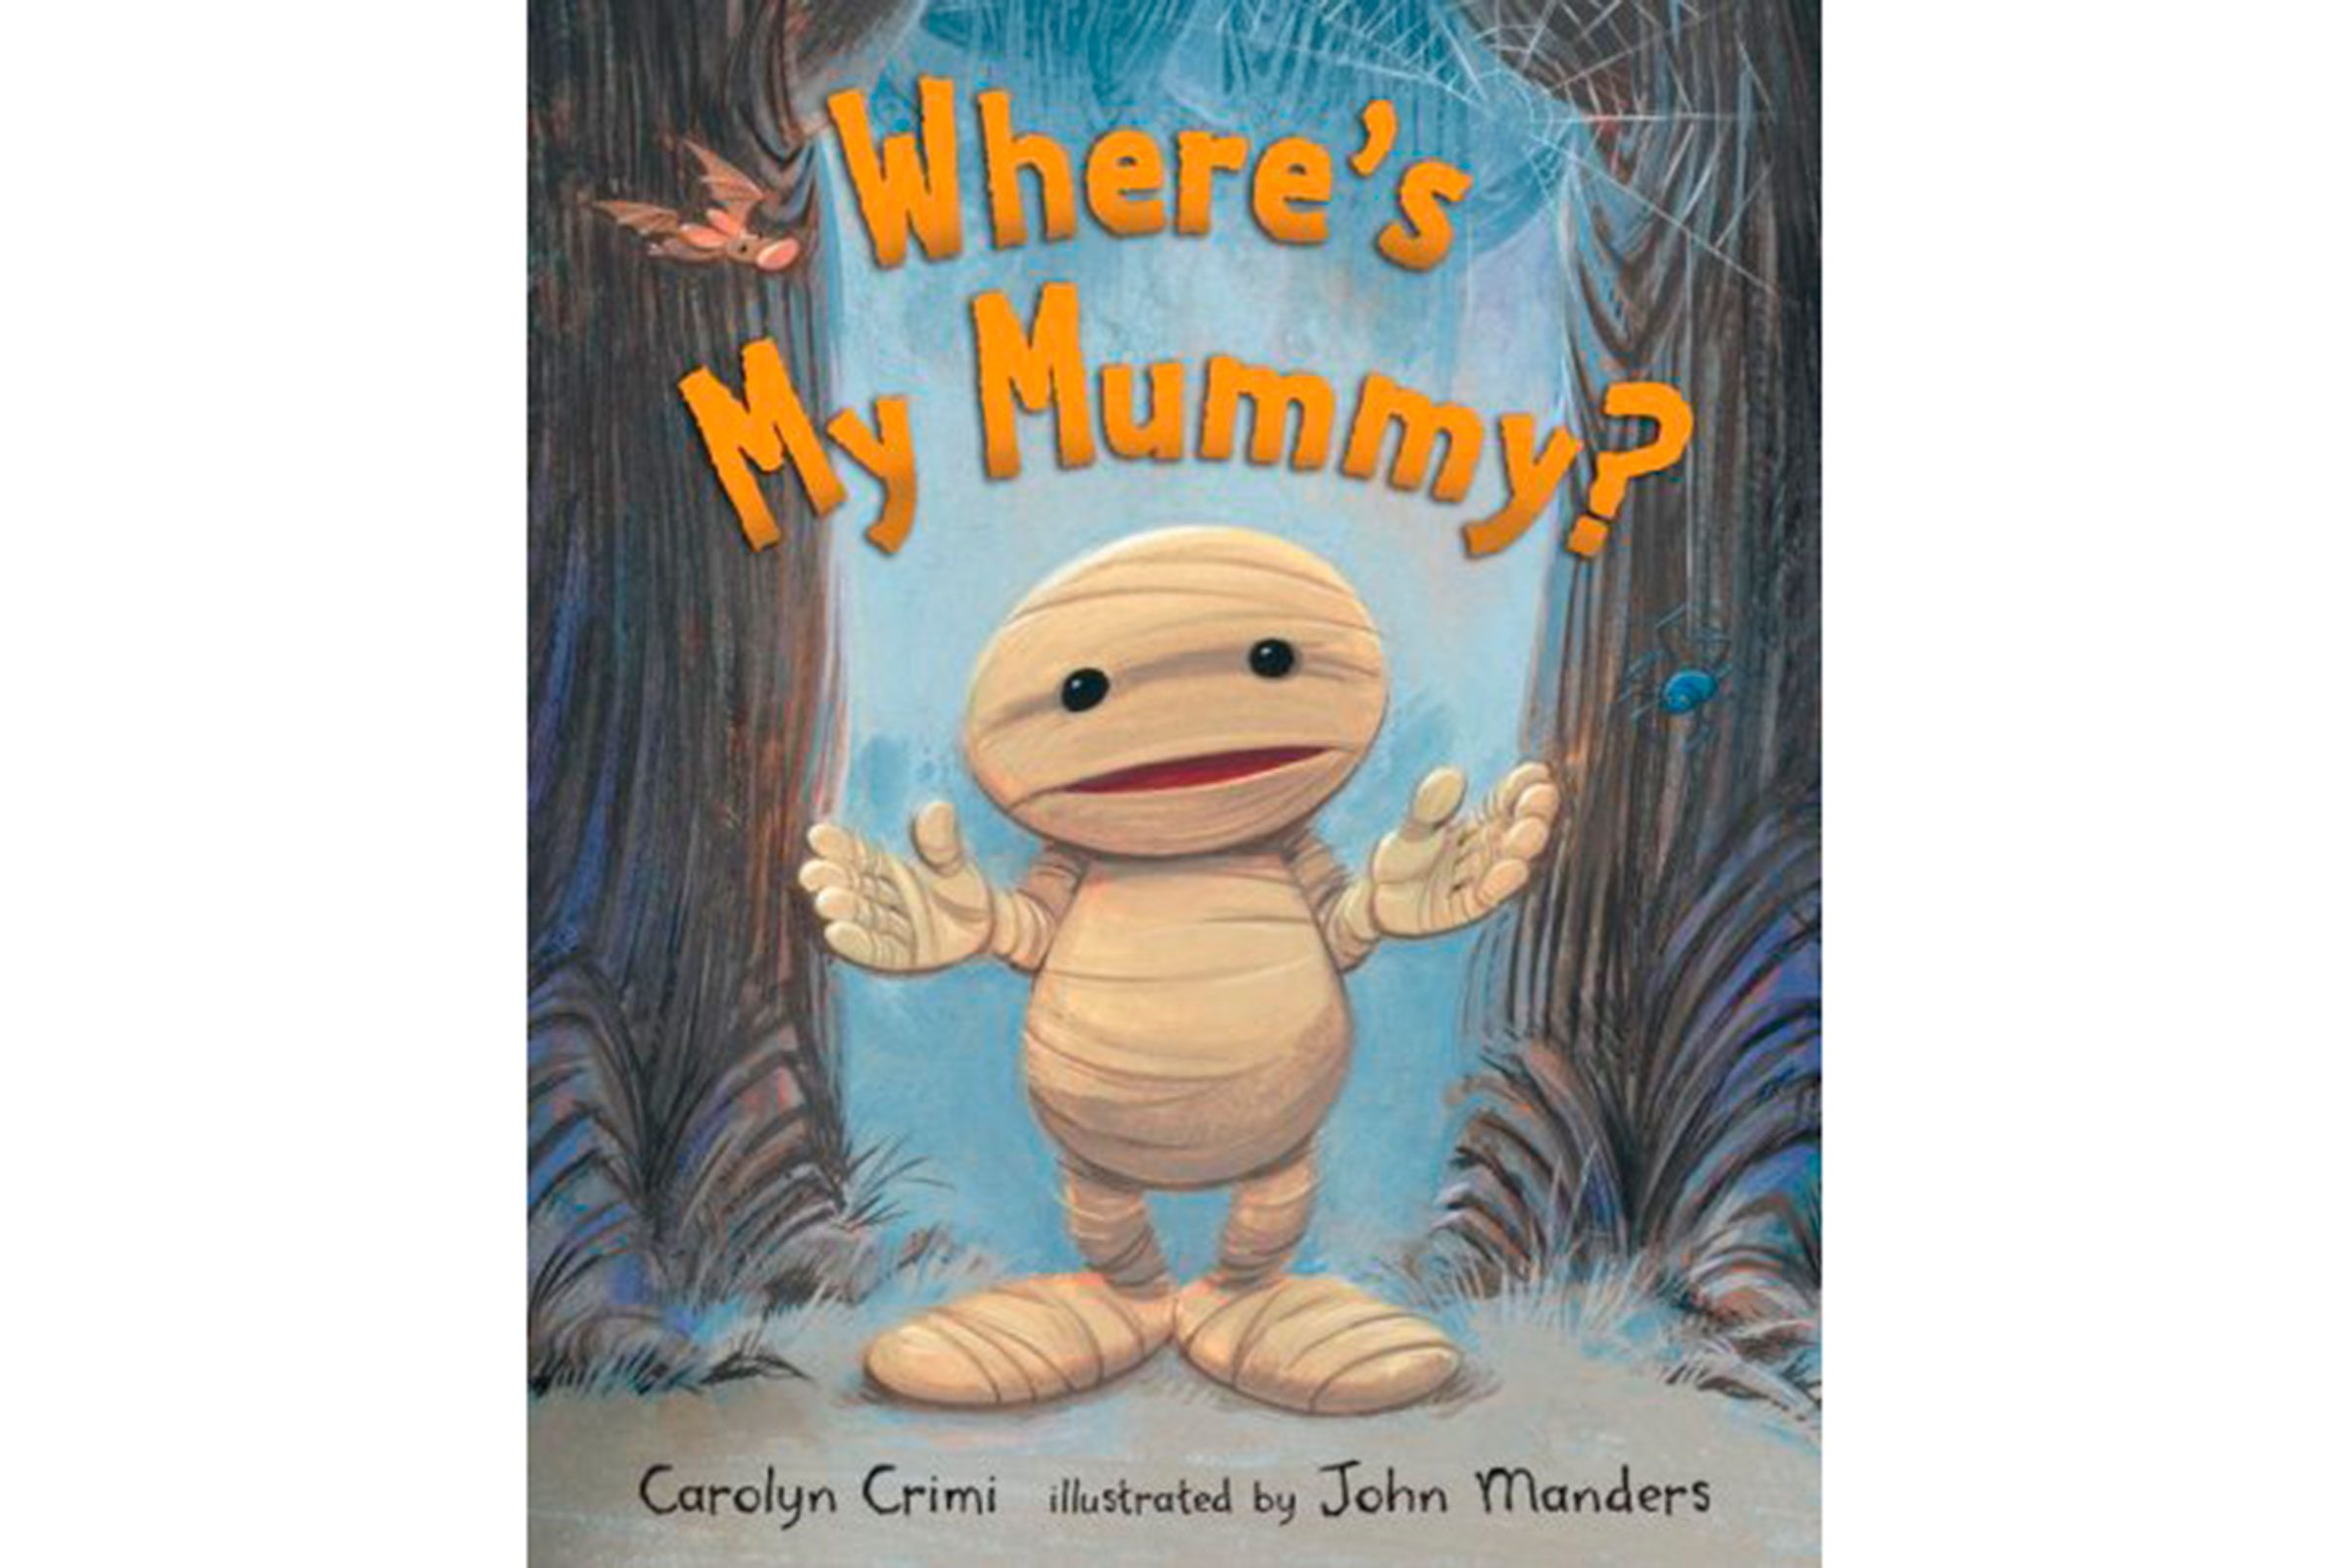 wheres my mummy by carolyn crimi and illustrated by john manders - Halloween Stories Kids